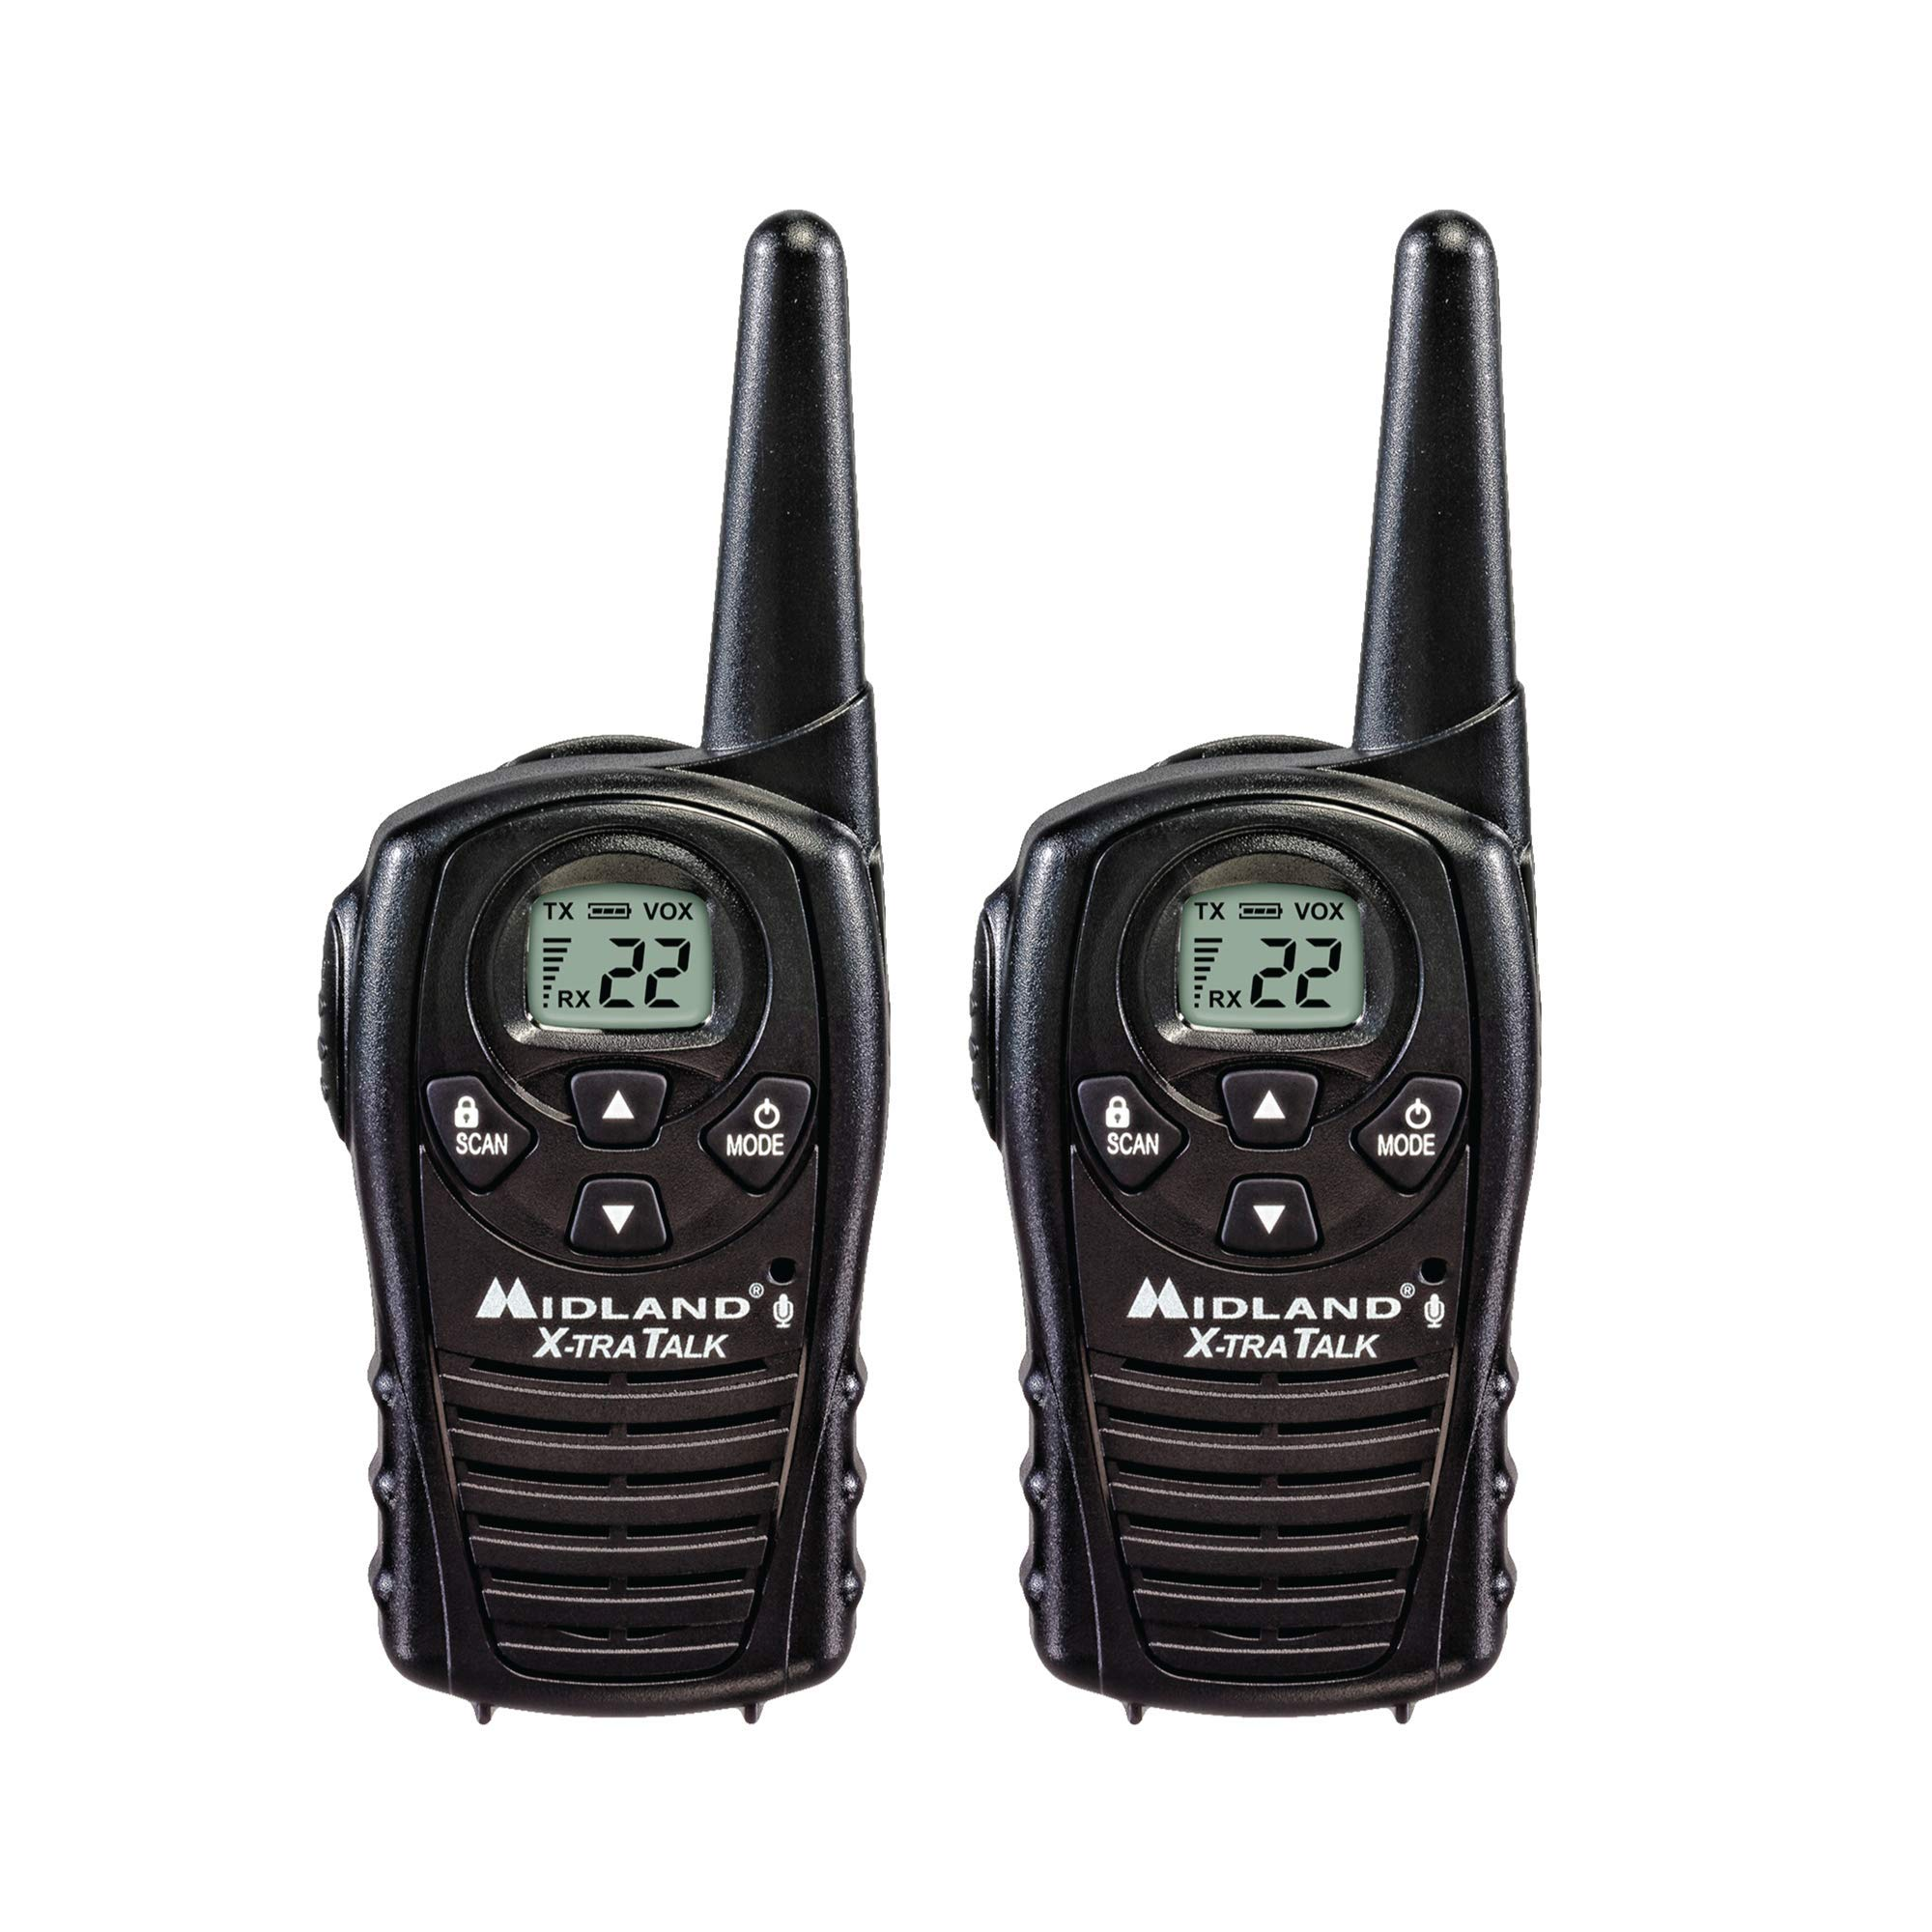 Midland - LXT118, FRS Walkie Talkies with Channel Scan - Up to 18 Mile Range Two Way Radio, Hands-Free VOX, Water Resistant (Pair Pack) (Black) by Midland